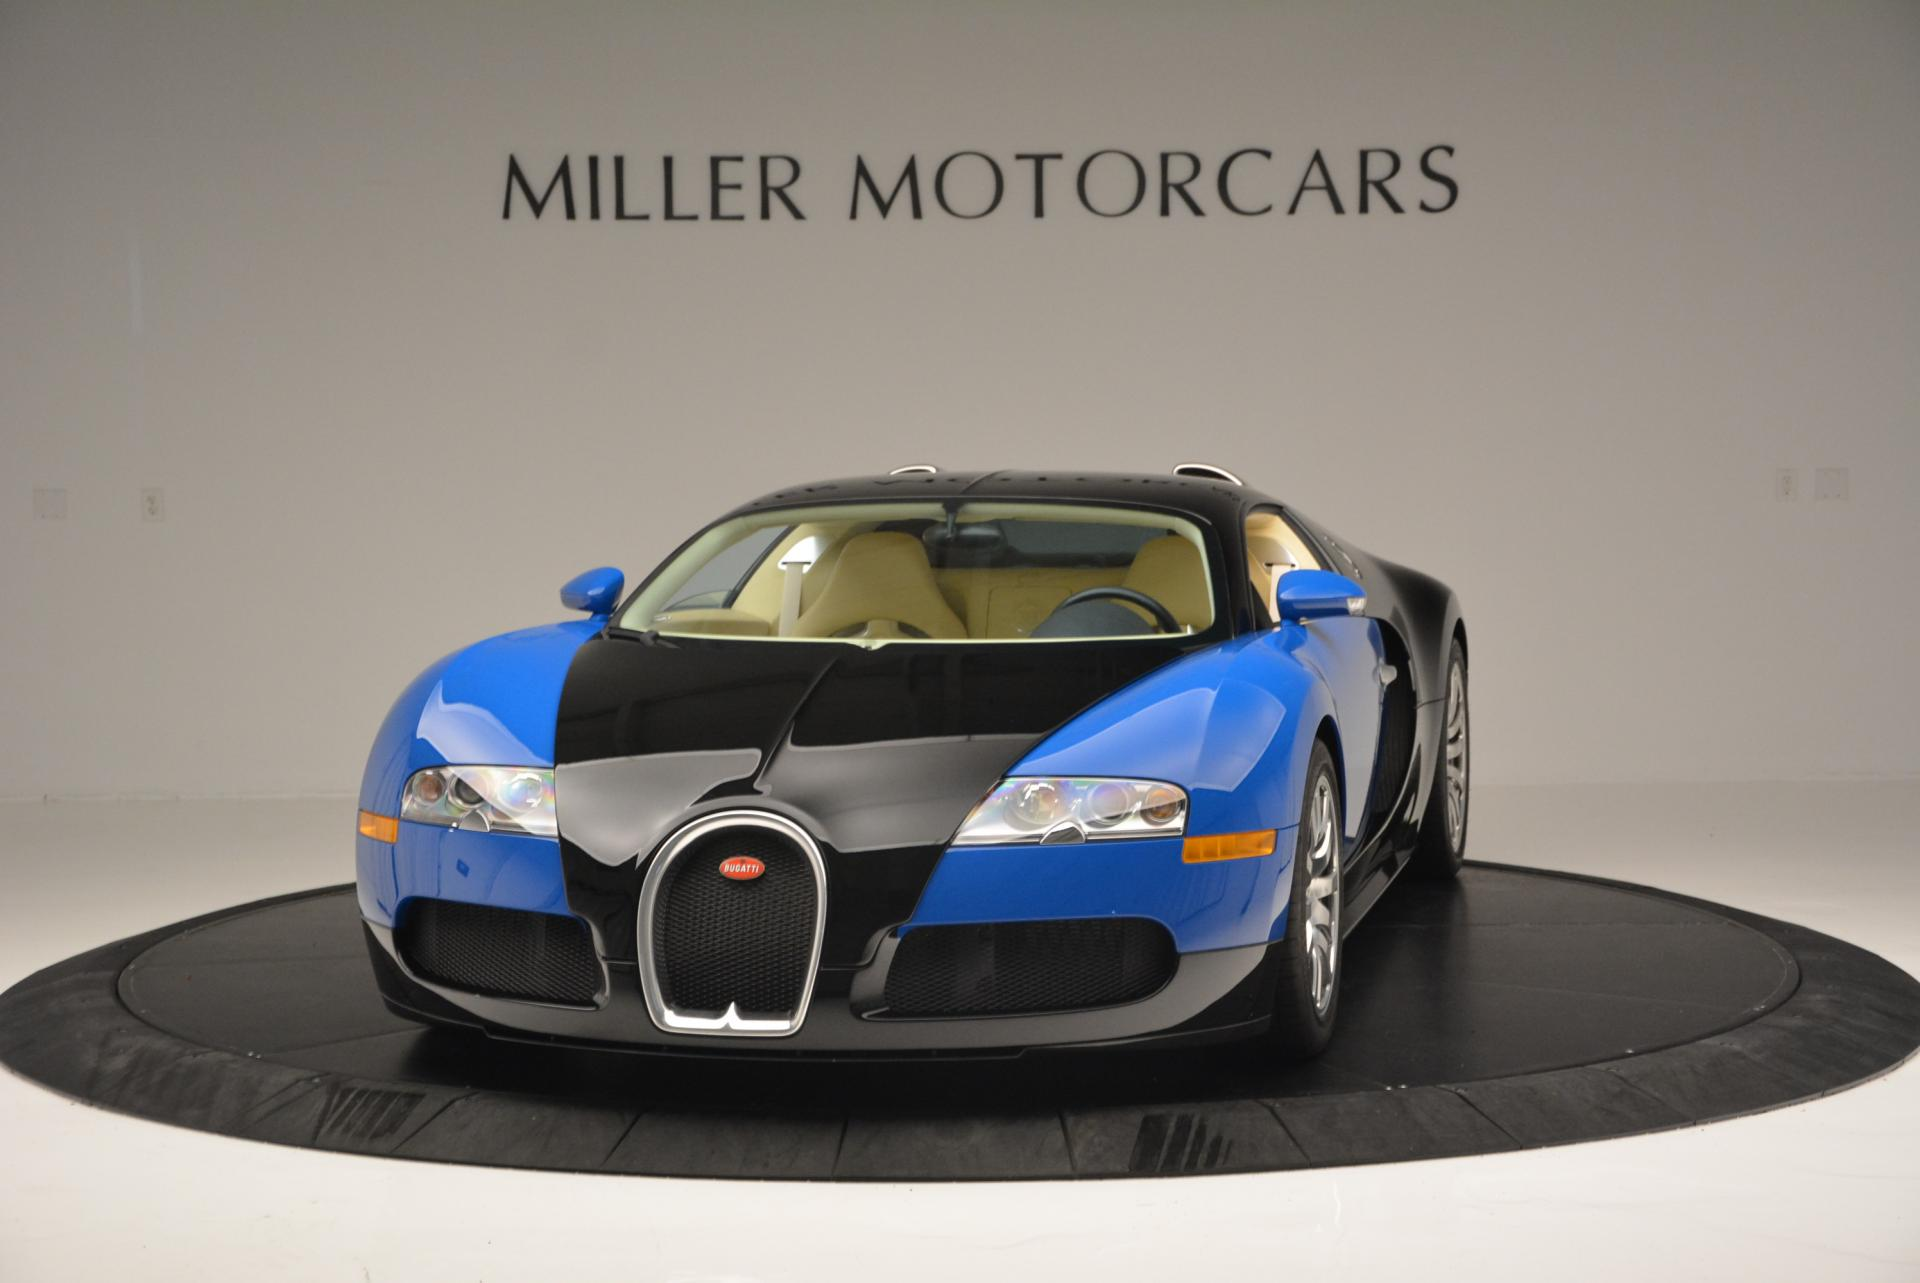 Used 2006 Bugatti Veyron 16.4 for sale Sold at Pagani of Greenwich in Greenwich CT 06830 1